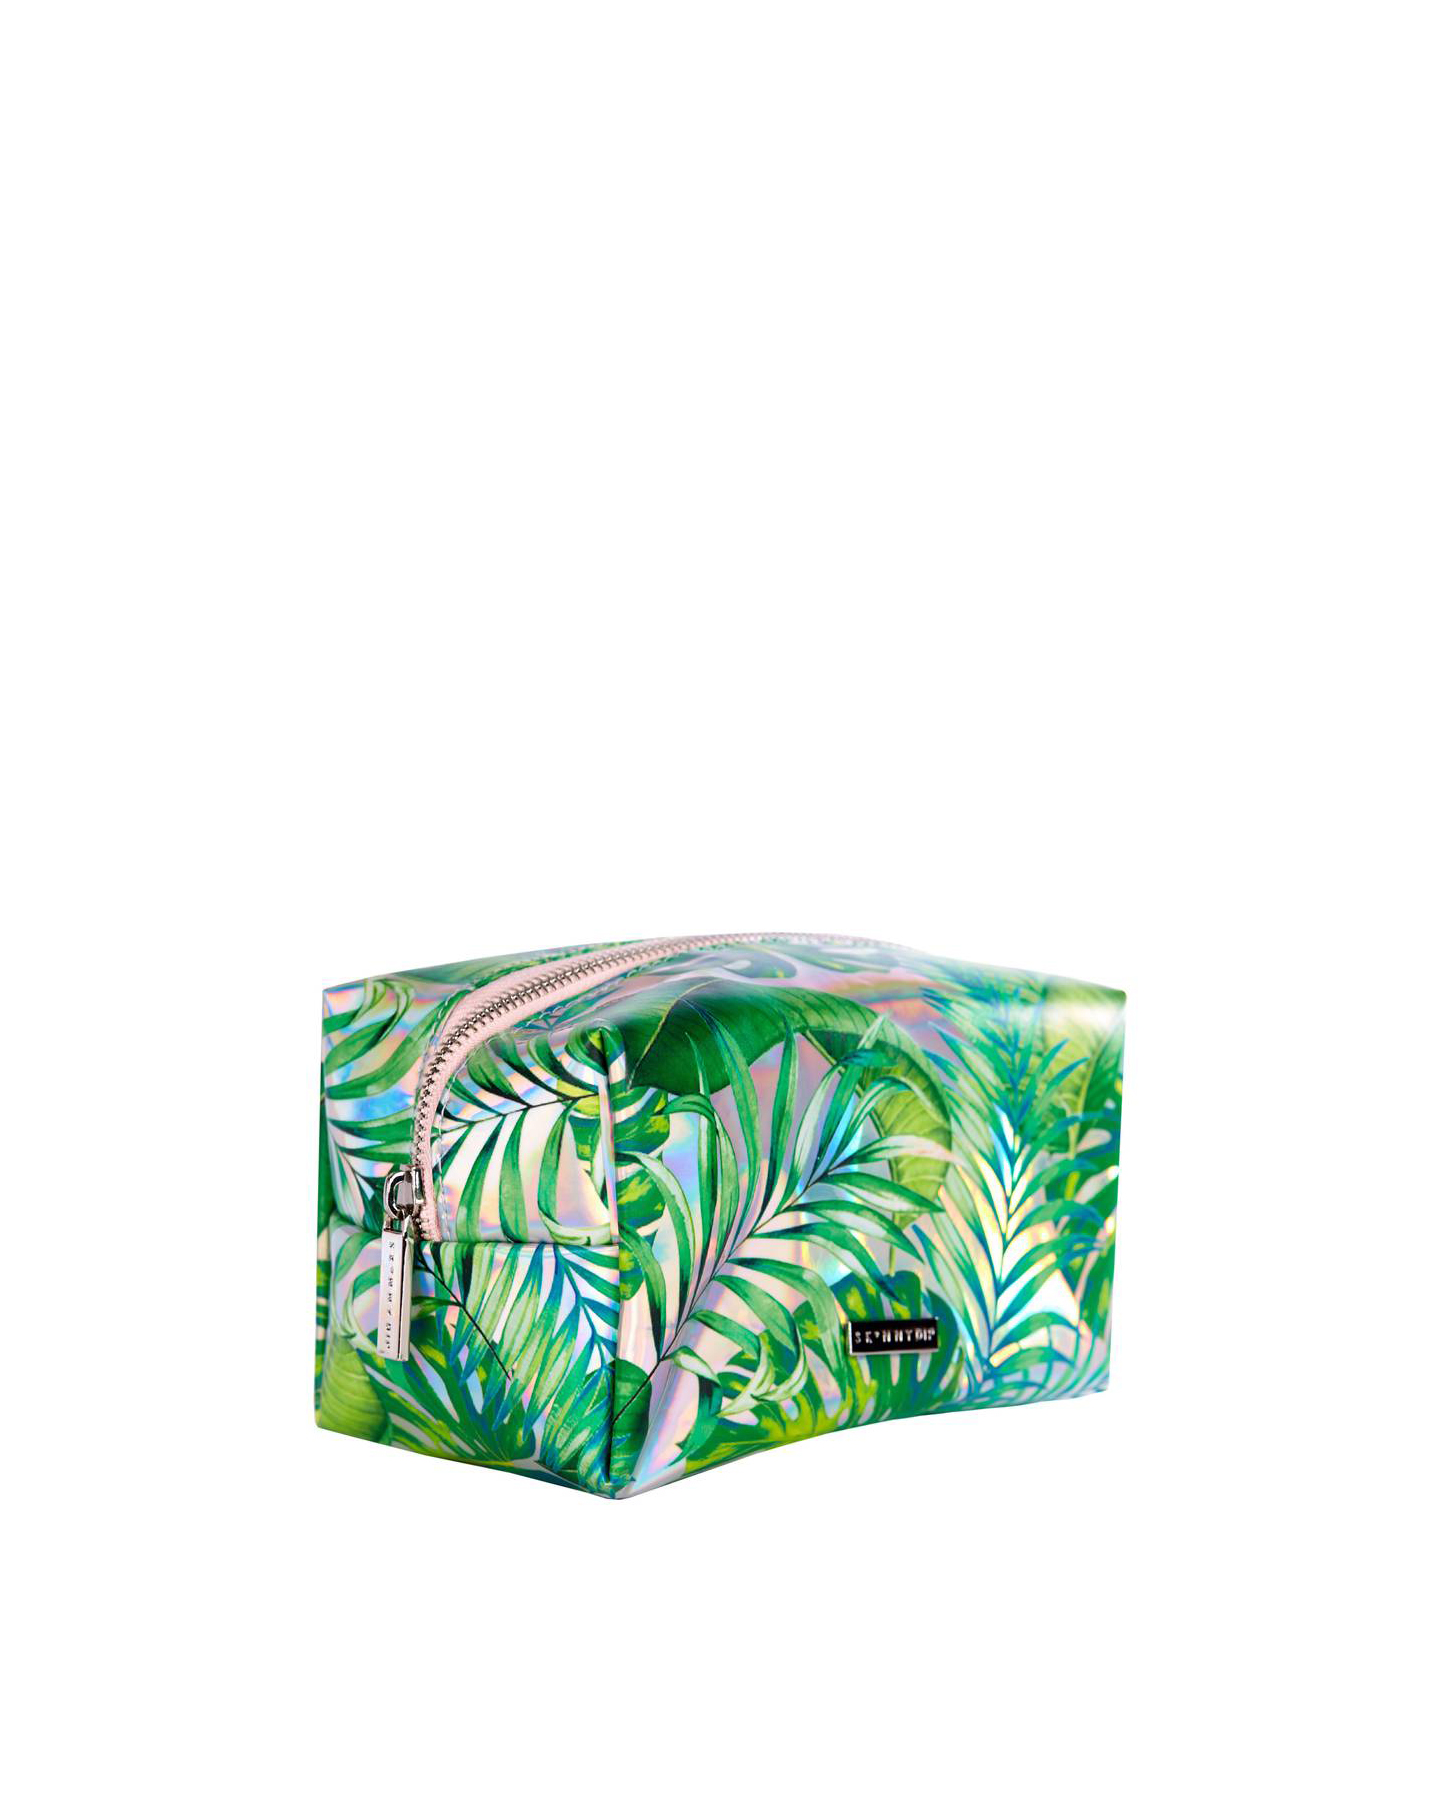 Dominica Cosmetics Case